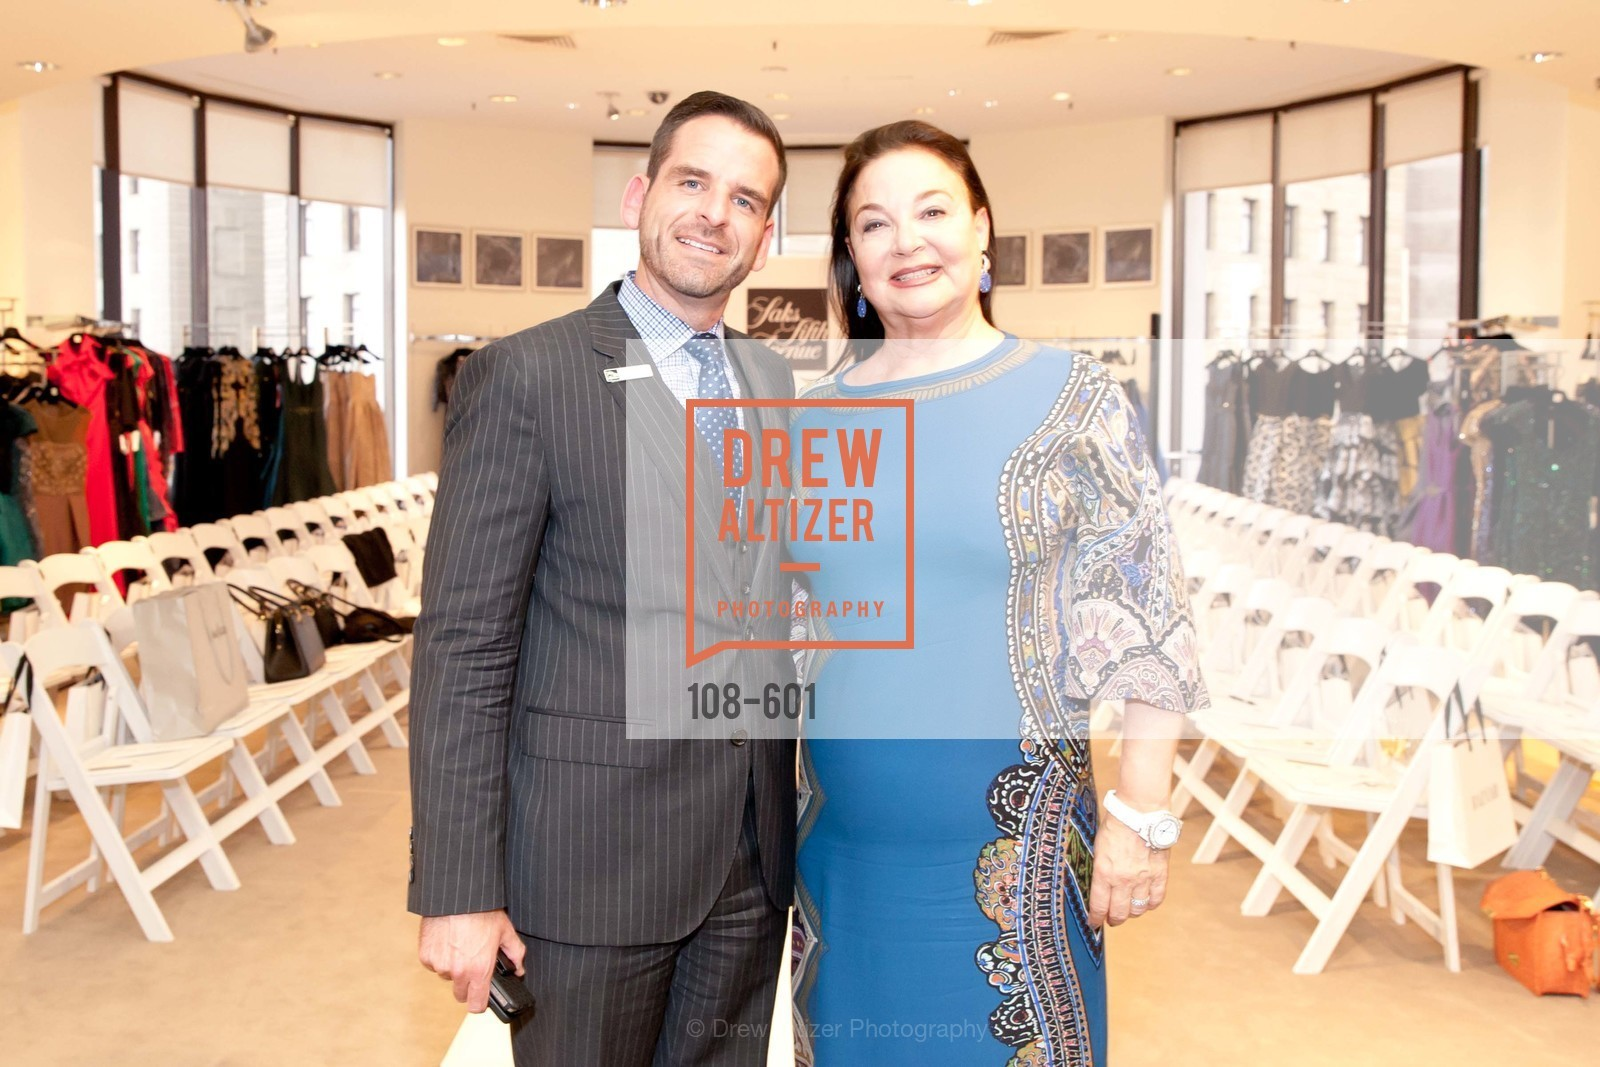 Ryan Williams, Elizabeth Merrill, SAKS FIFTH AVENUE and HARPER'S BAZAAR Host the San Francisco Yacht Club, US, October 9th, 2014,Drew Altizer, Drew Altizer Photography, full-service agency, private events, San Francisco photographer, photographer california